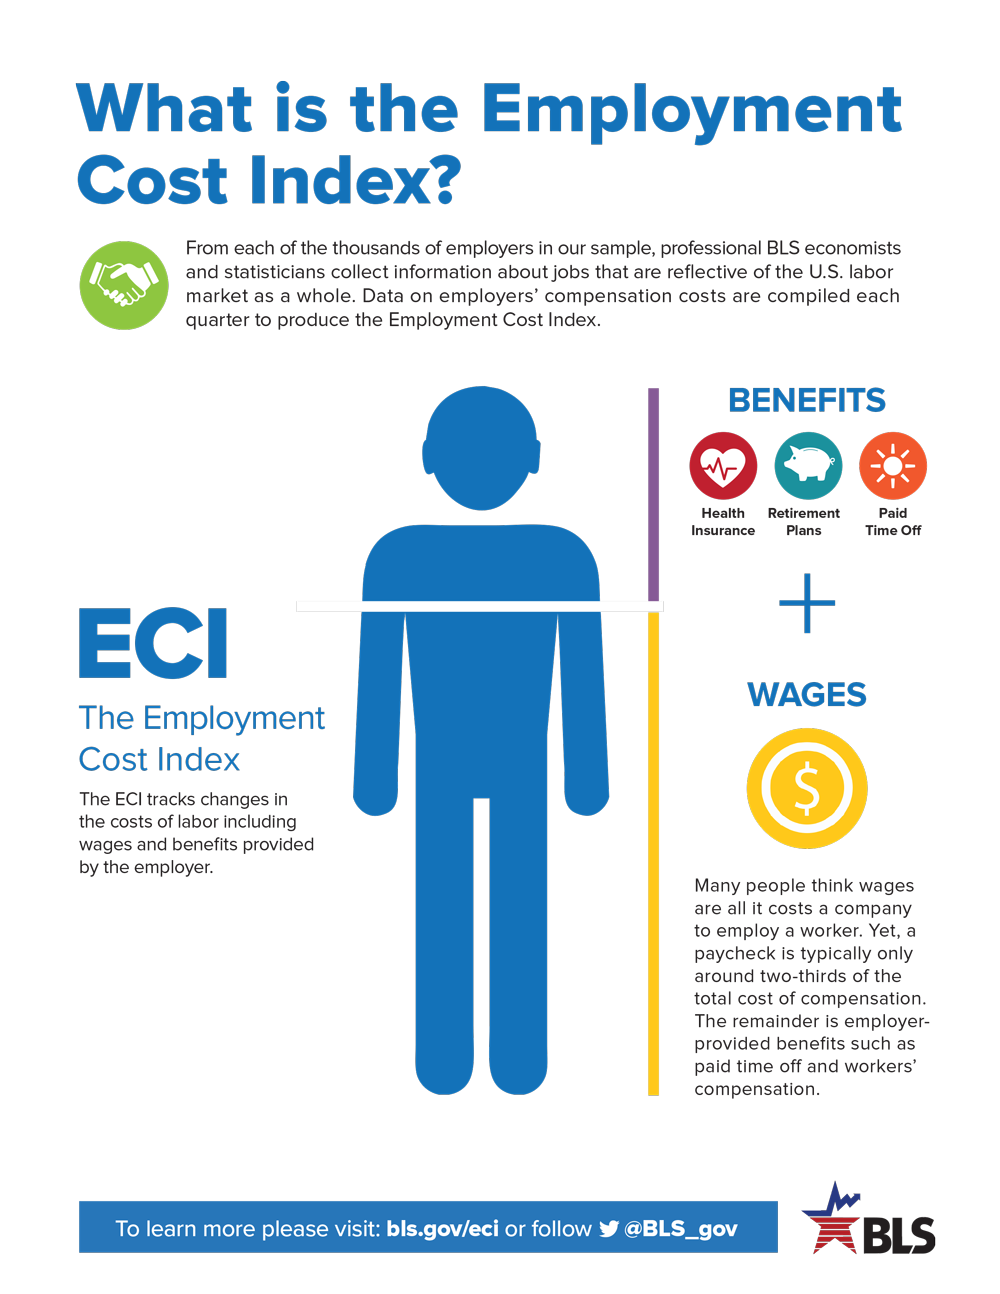 What is the Employment Cost Index